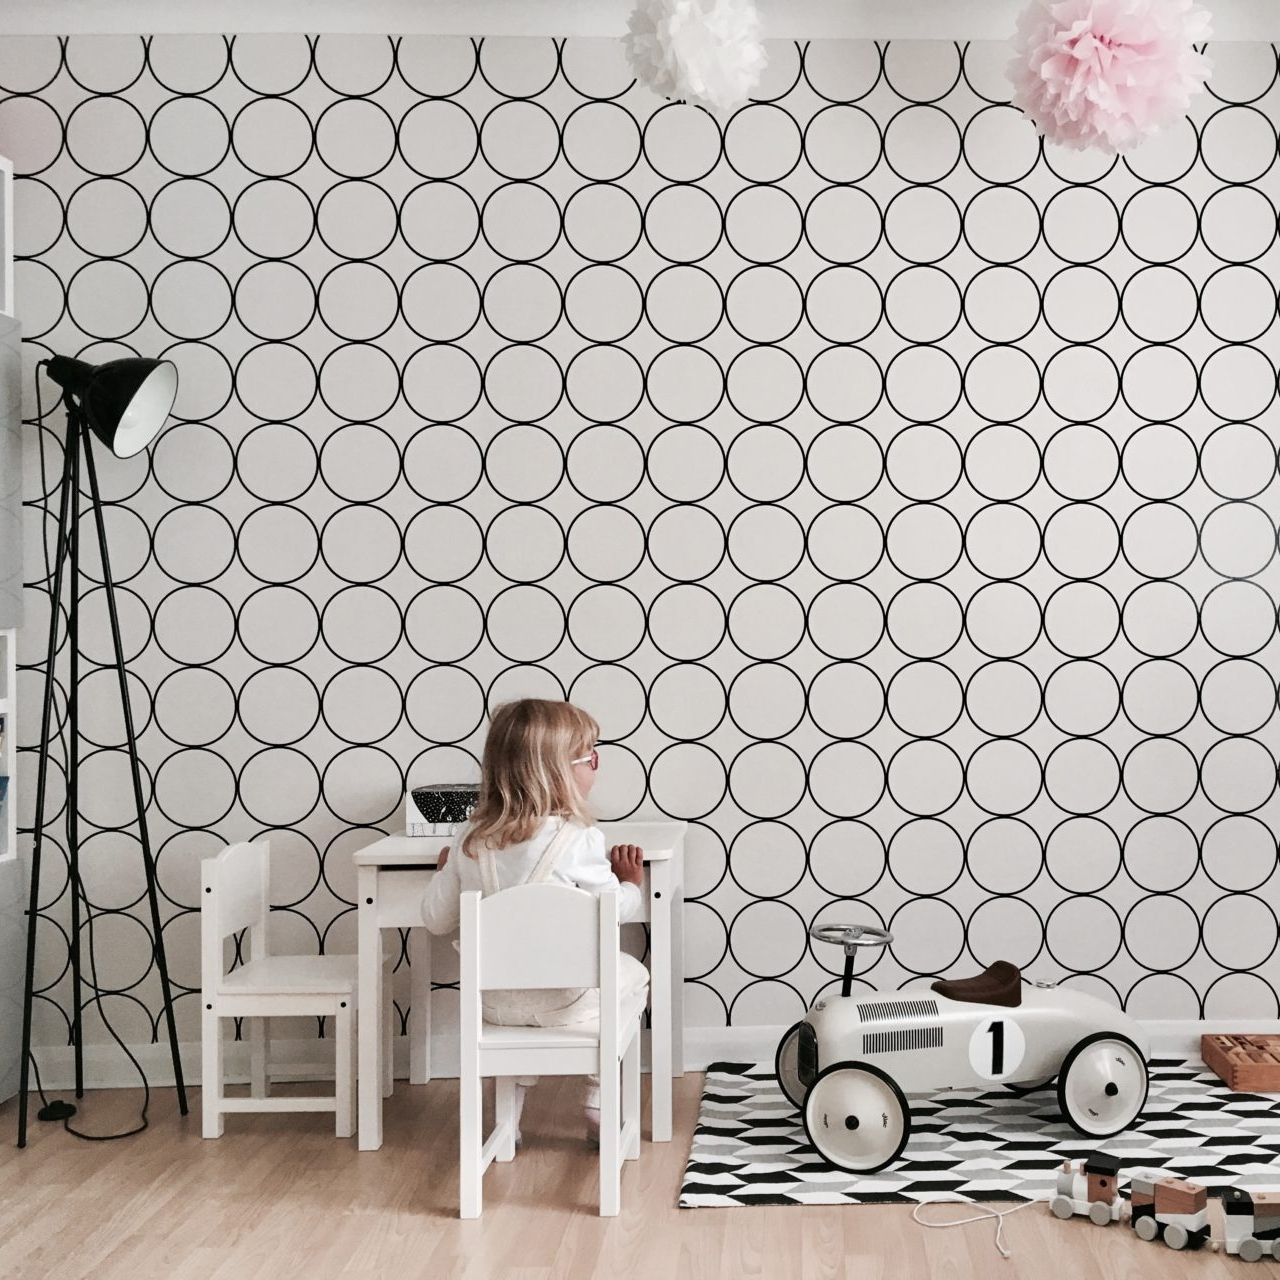 KIDS INTERIOR DESIGN - RevelLab - Children Interior Design StudioSERVICES: Children Interior Design and Styling • Kids bedrooms • Nurseries • PlayroomsOFFER: Free consultation (worth £50)LOCATION: London